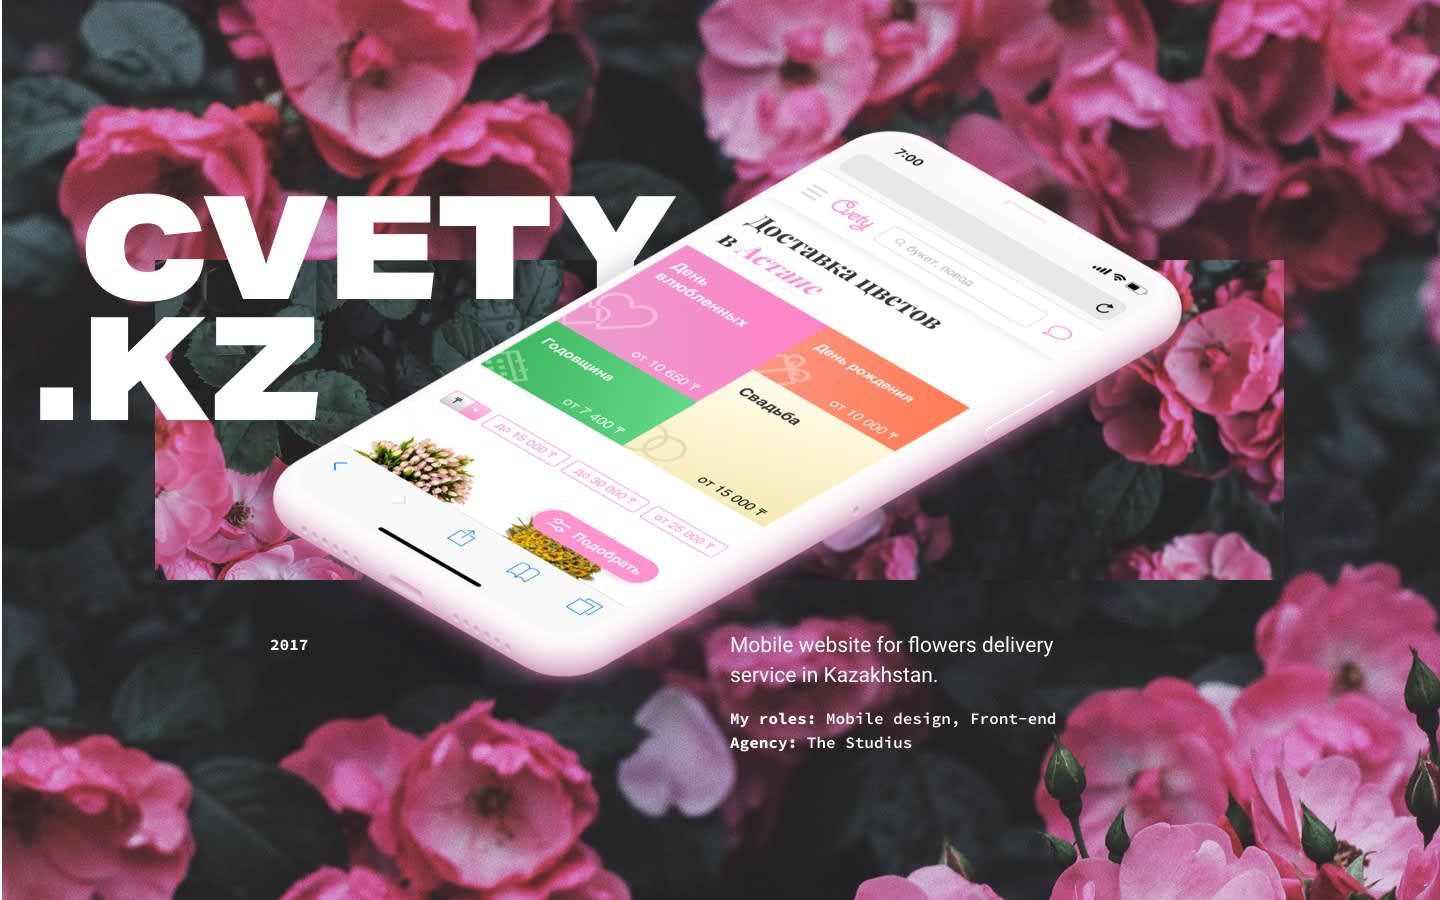 Mobile website for flowers delivery service in Kazakhstan